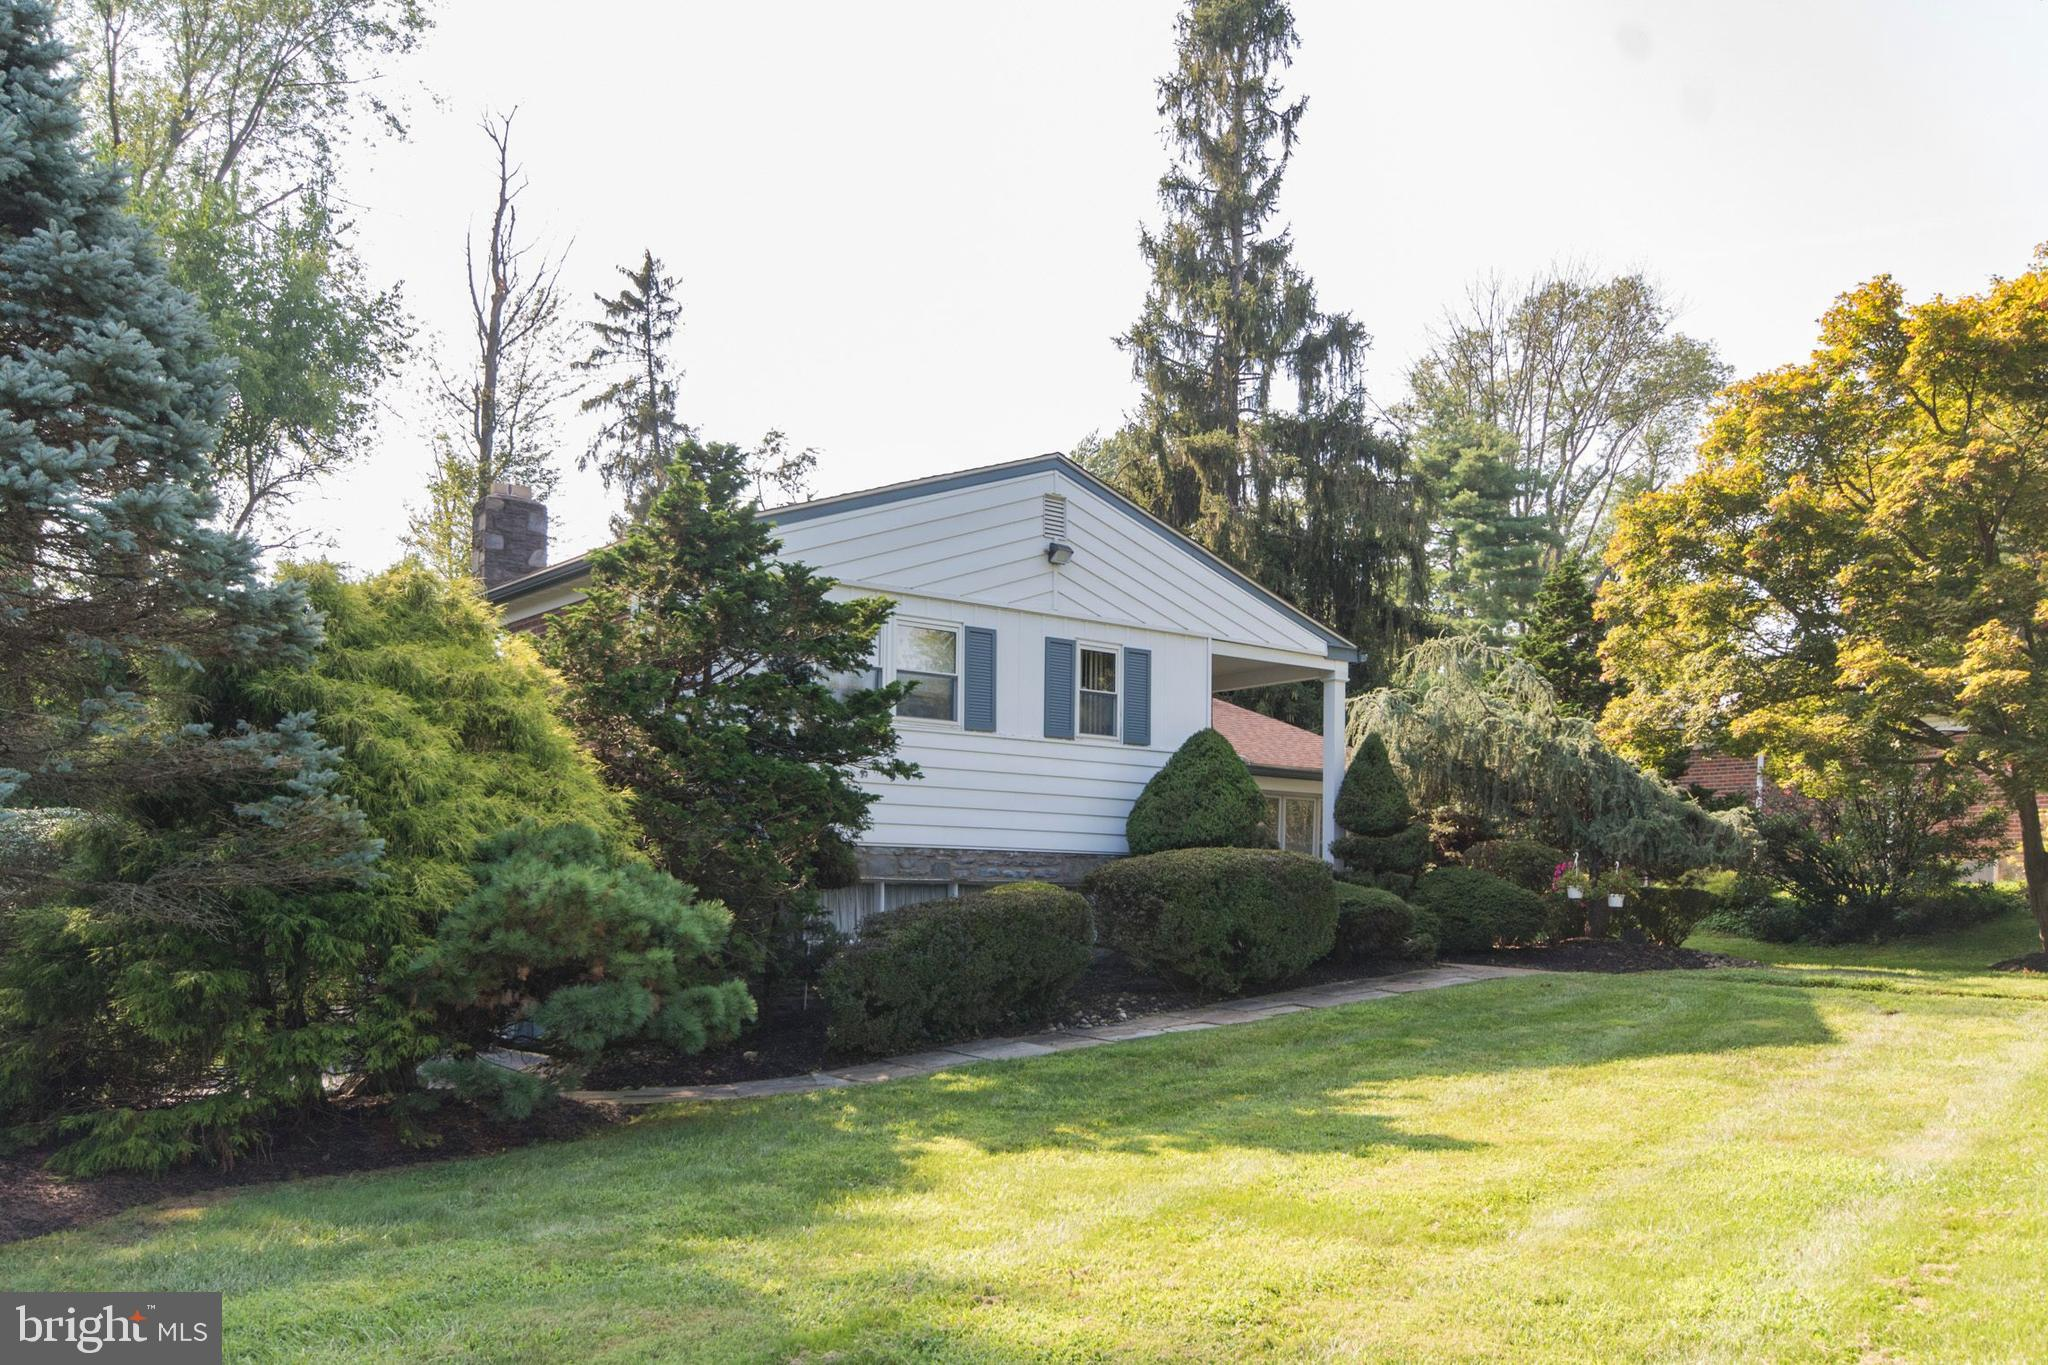 Beautiful, Open Feel Multi Level Home in wonderful condition! Move right on in! Professionally landscaped corner lot on  .45 of an acre!  Ceramic floor entry, step down to the Living Room/Dining Room with hardwood floors, cathedral ceiling, lots of floor to ceiling windows! Not to miss the crown moldings and the high hats! Pocket doors to the Eat In Kitchen with an atrium ceiling and a large Palladium window over the sink, overlooking the deck and the gardens. Dishwasher/stove and microwave are all new! Upper level: Master Bedroom with a huge walk-in Closet and Full Bath, 3 more Bedrooms, Hall Bath with a jacuzzi bathtub, and linen closet. Lower Level: Powder Room, Large Family Room with gas burning stone fireplace and walk out to the rear yard. Laundry room with side door exit, One car garage (was a 2 car garage) with a cedar closet and a huge storage closet with indoor access into the house. Roof was replaced in 2016. Other features include: Alarm system,  LED sensory security lights outside, replacement windows, newer roof! Easy access to the expressway and Center City and parks!